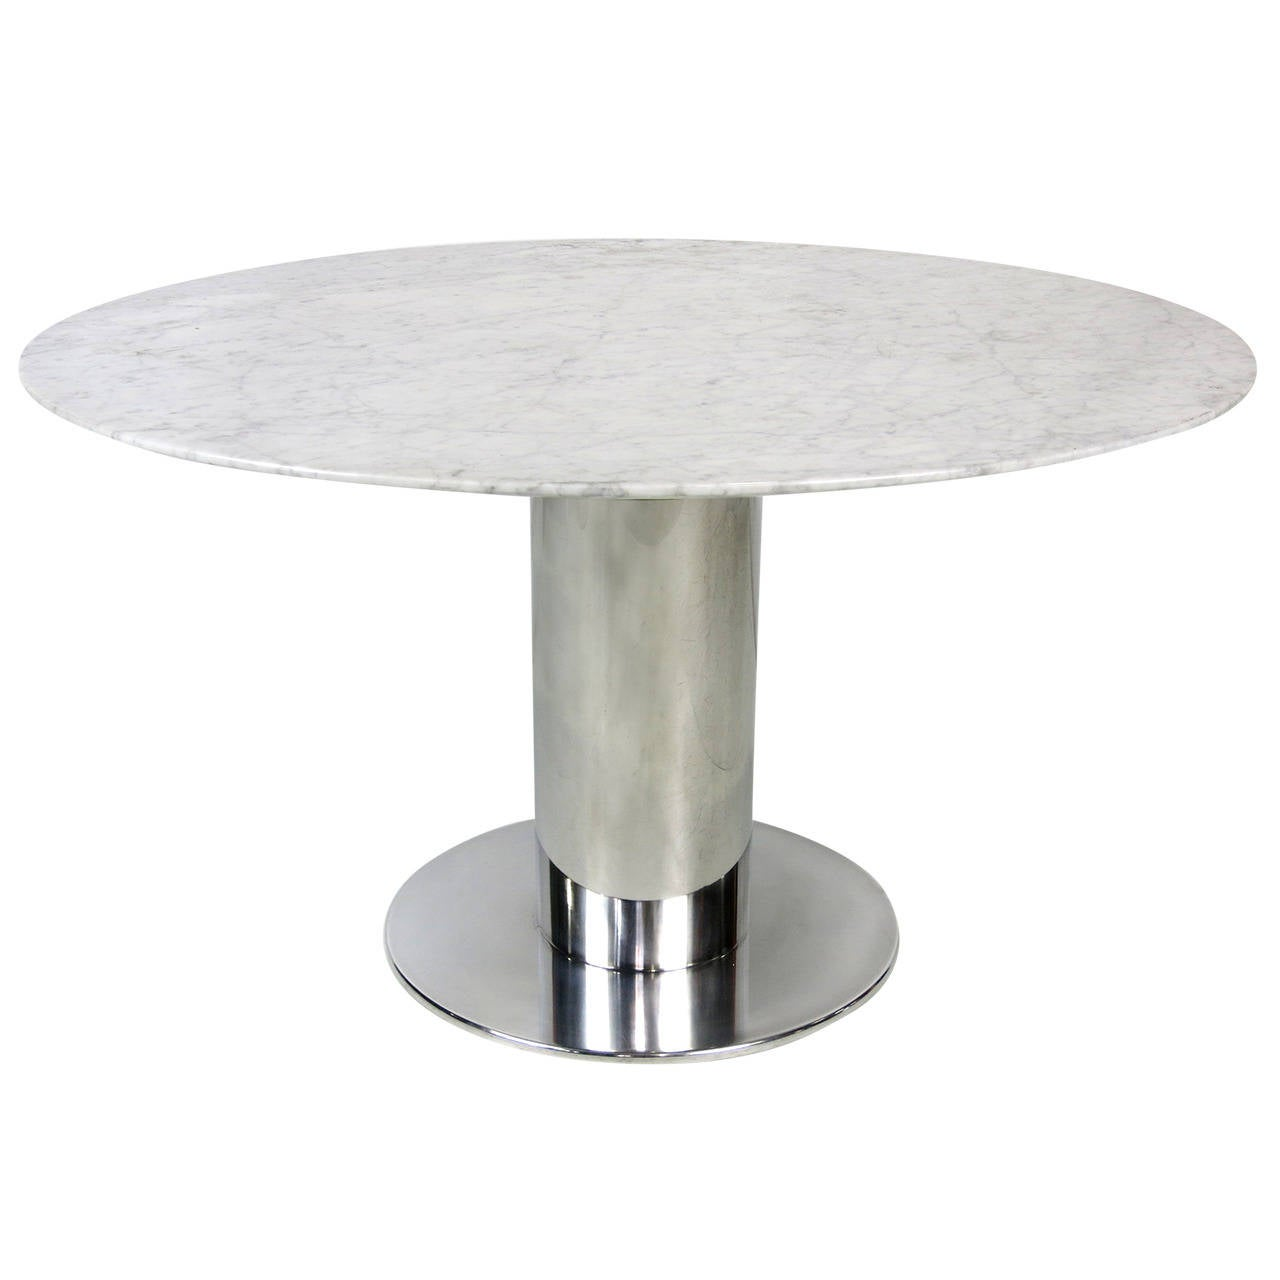 Polished Stainless Steel Dining Table Base For Sale